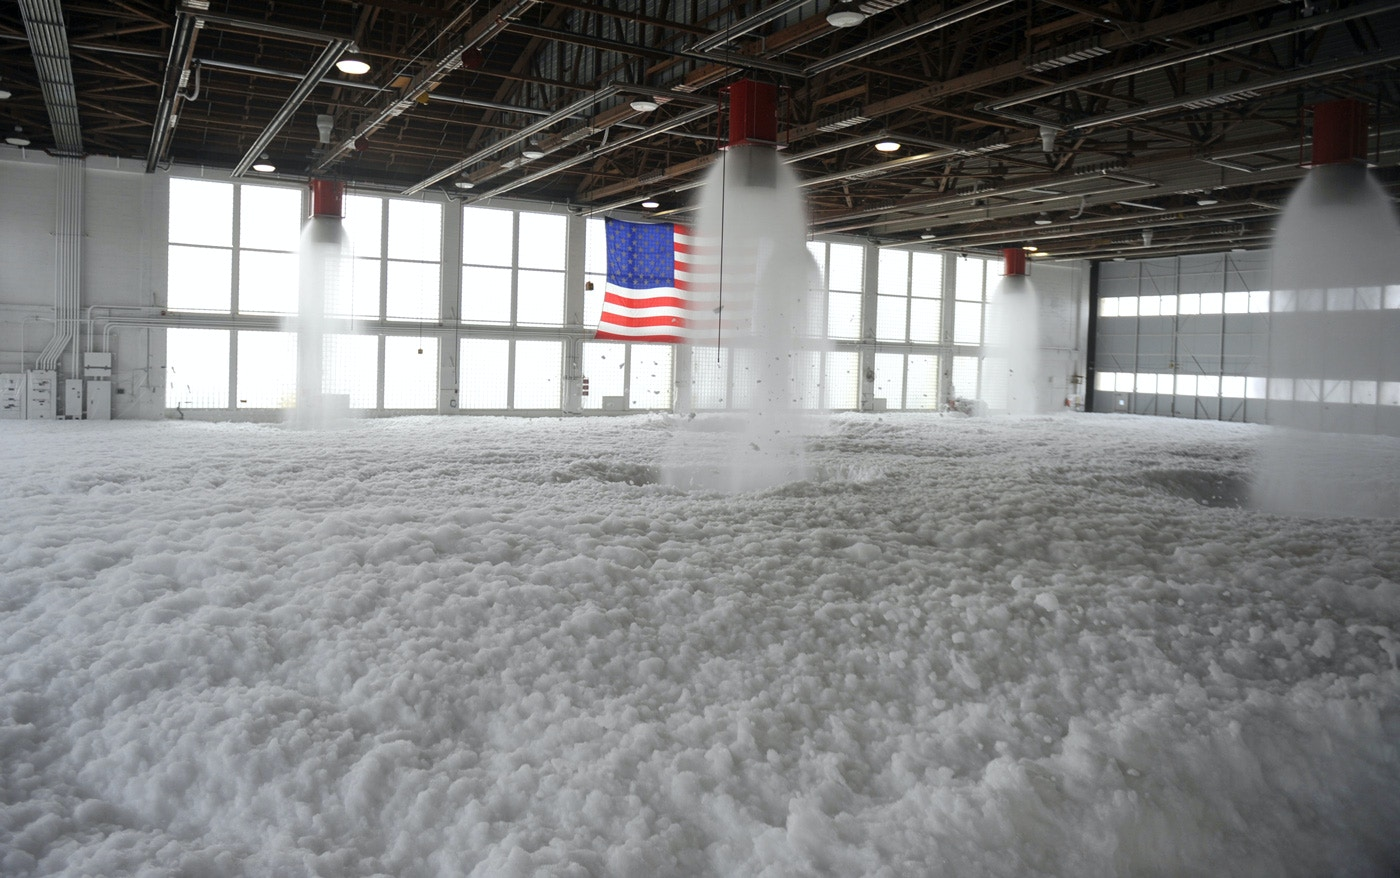 Aqueous Film Forming Foam, or AFFF, fills Hangar 211 Dec. 21, 2012, at Mountain Home Air Force Base, Idaho. Personnel from the 366th Civil Engineer Squadron performed the test to ensure aircraft maintainers who work inside this hangar will have a safe place to perform their operations – in the event of a fire the system will protect the Airmen and equipment. (U.S. Air Force photo/Senior Airman Heather Hayward/Released)